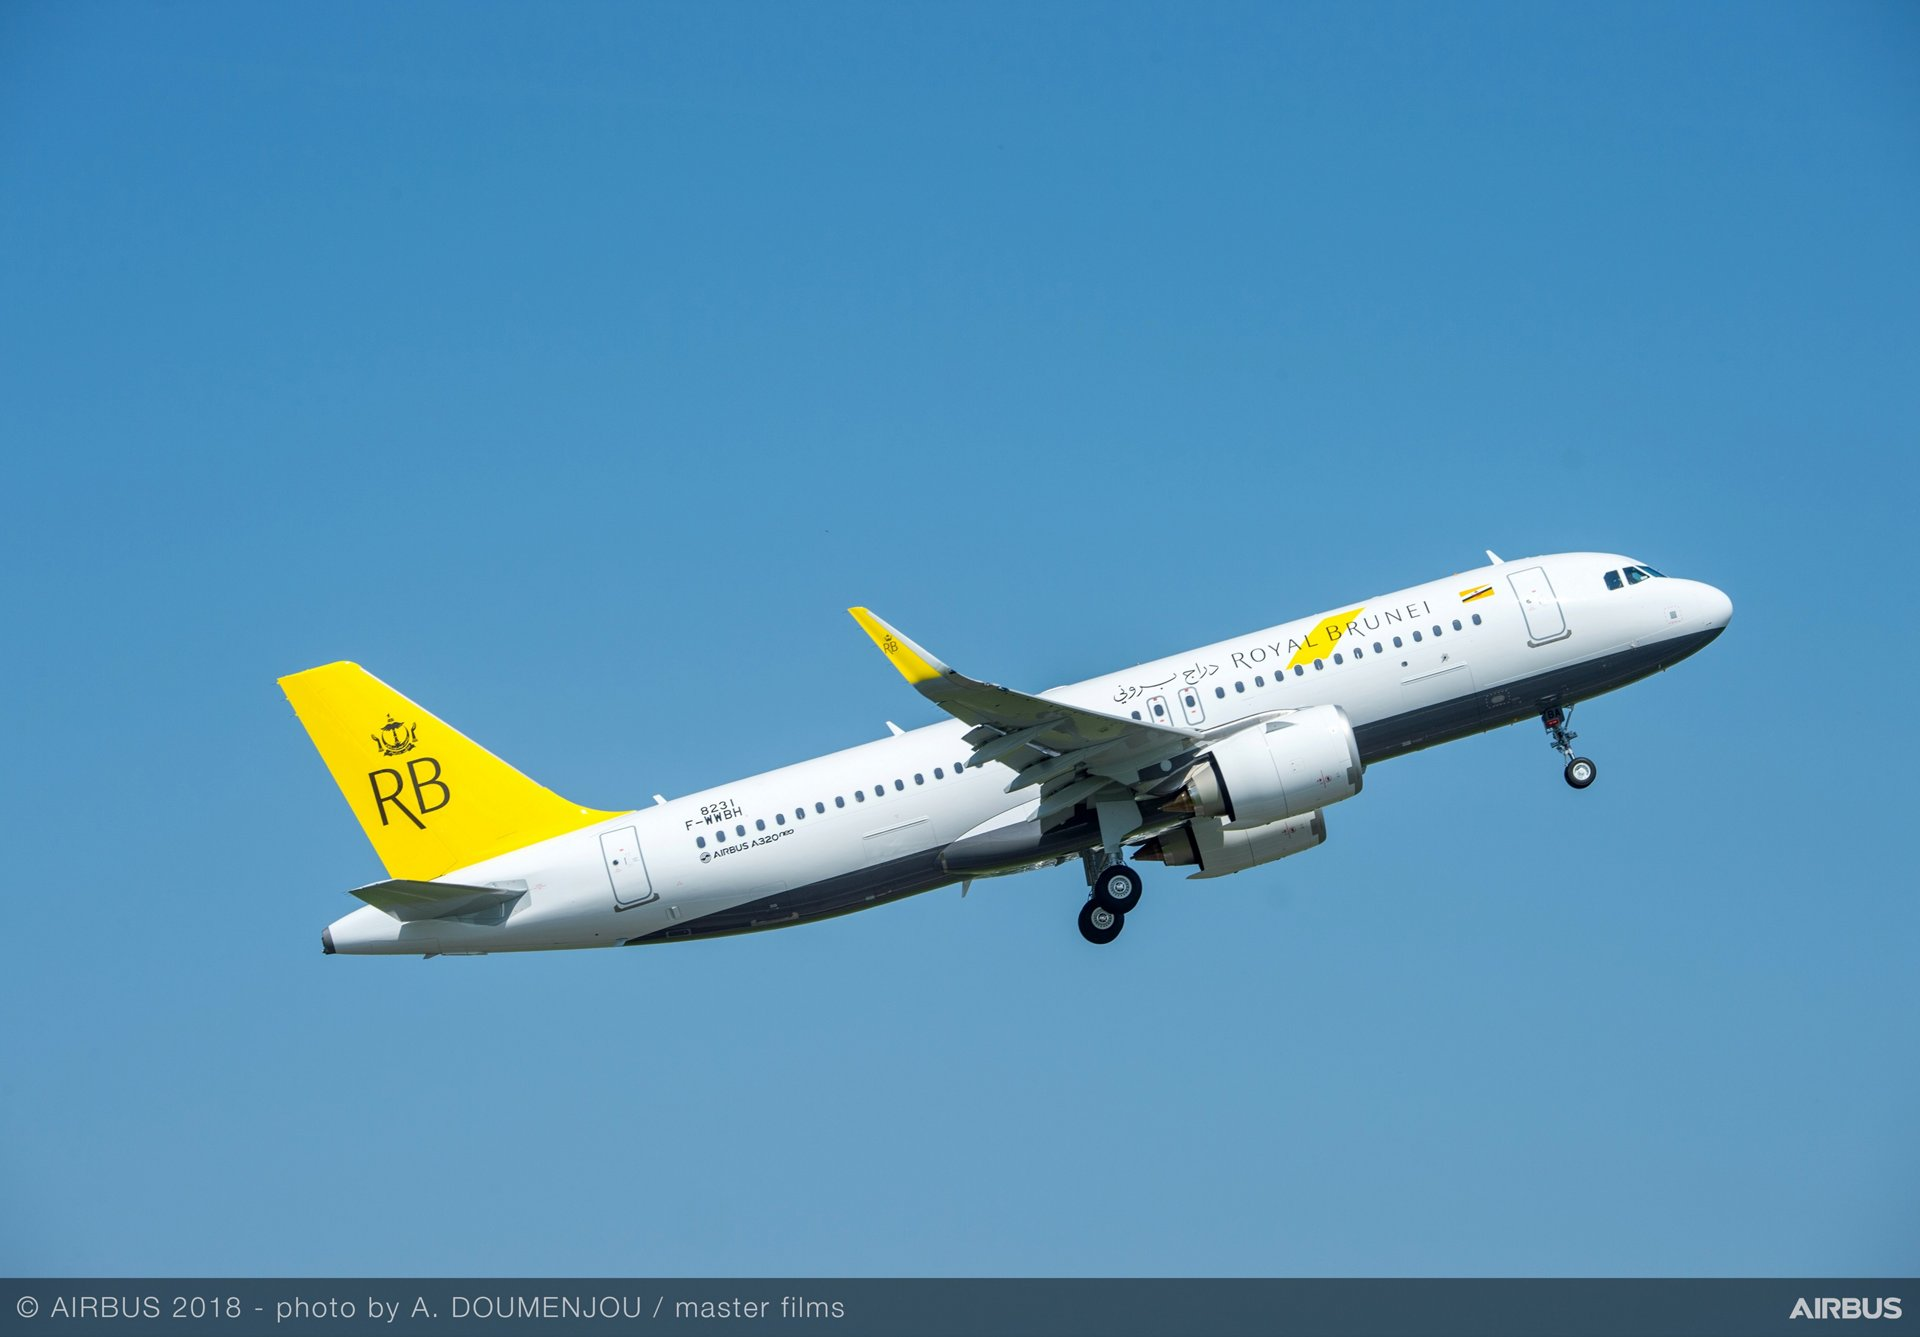 Royal Brunei Airlines is adding A320neo jetliners to a fleet of A320 Family aircraft operated by the carrier since 2003